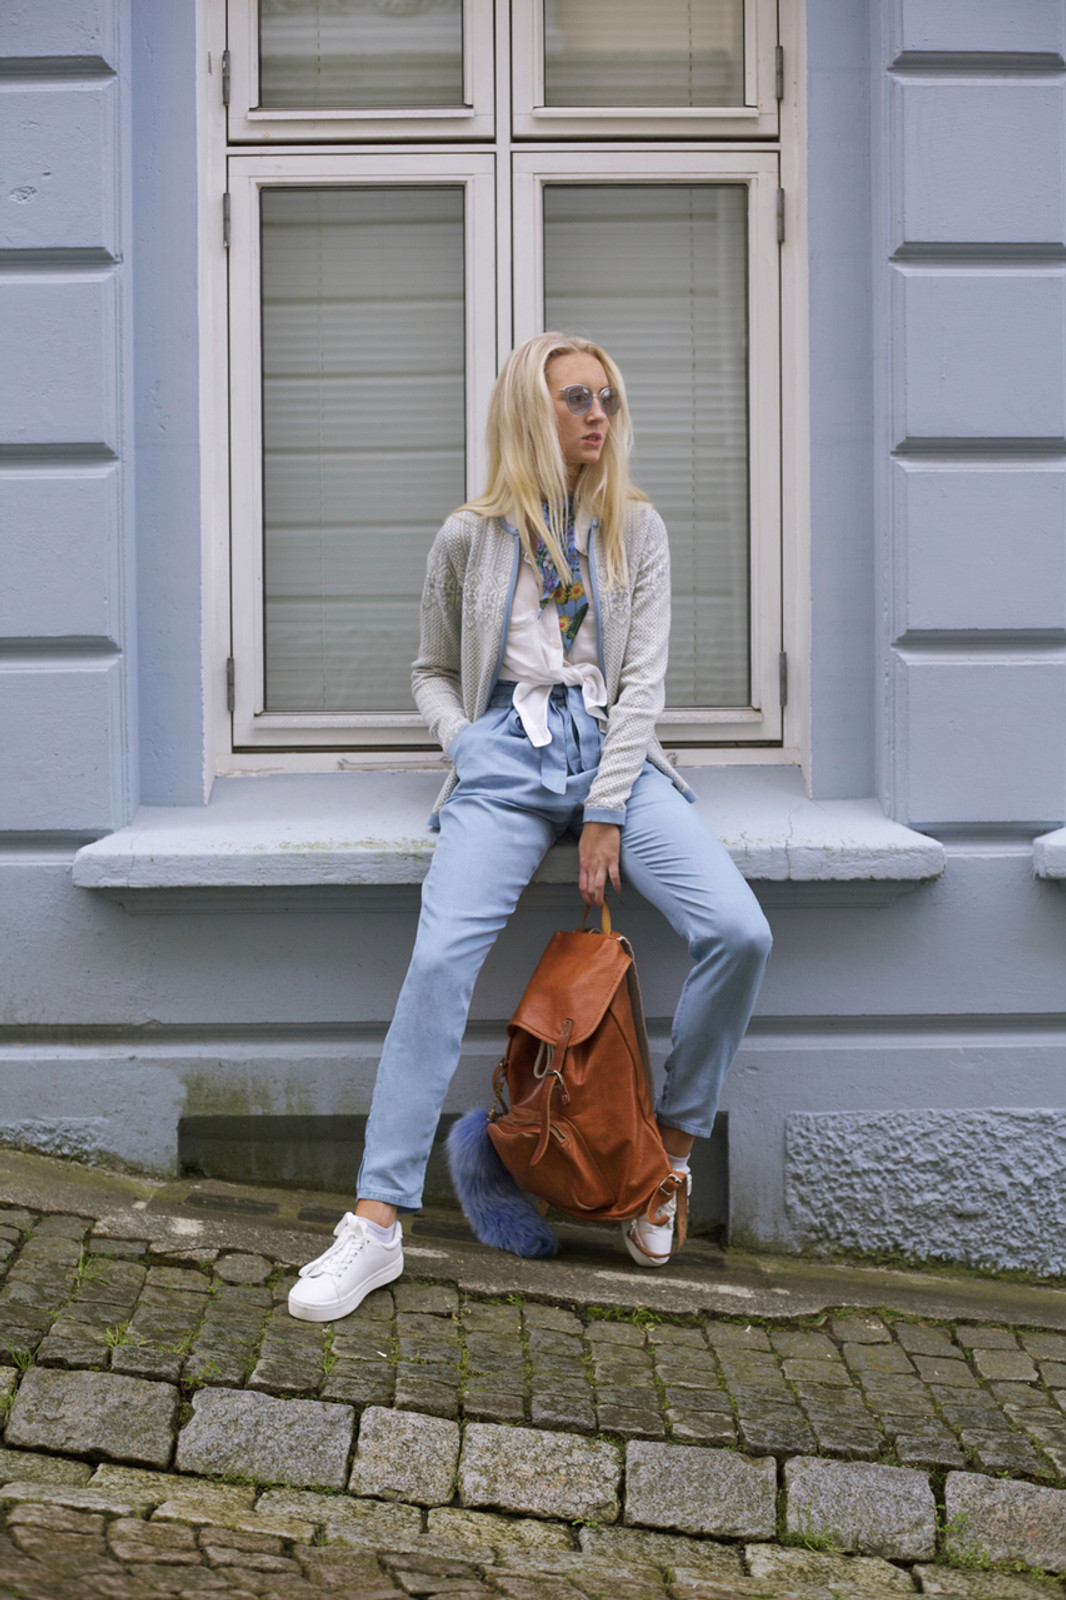 Woman by window wearing Dale of Norway's Sigrid Ladies Cardigan in Grey Mel/Off White/Ice Blue, 82071-E